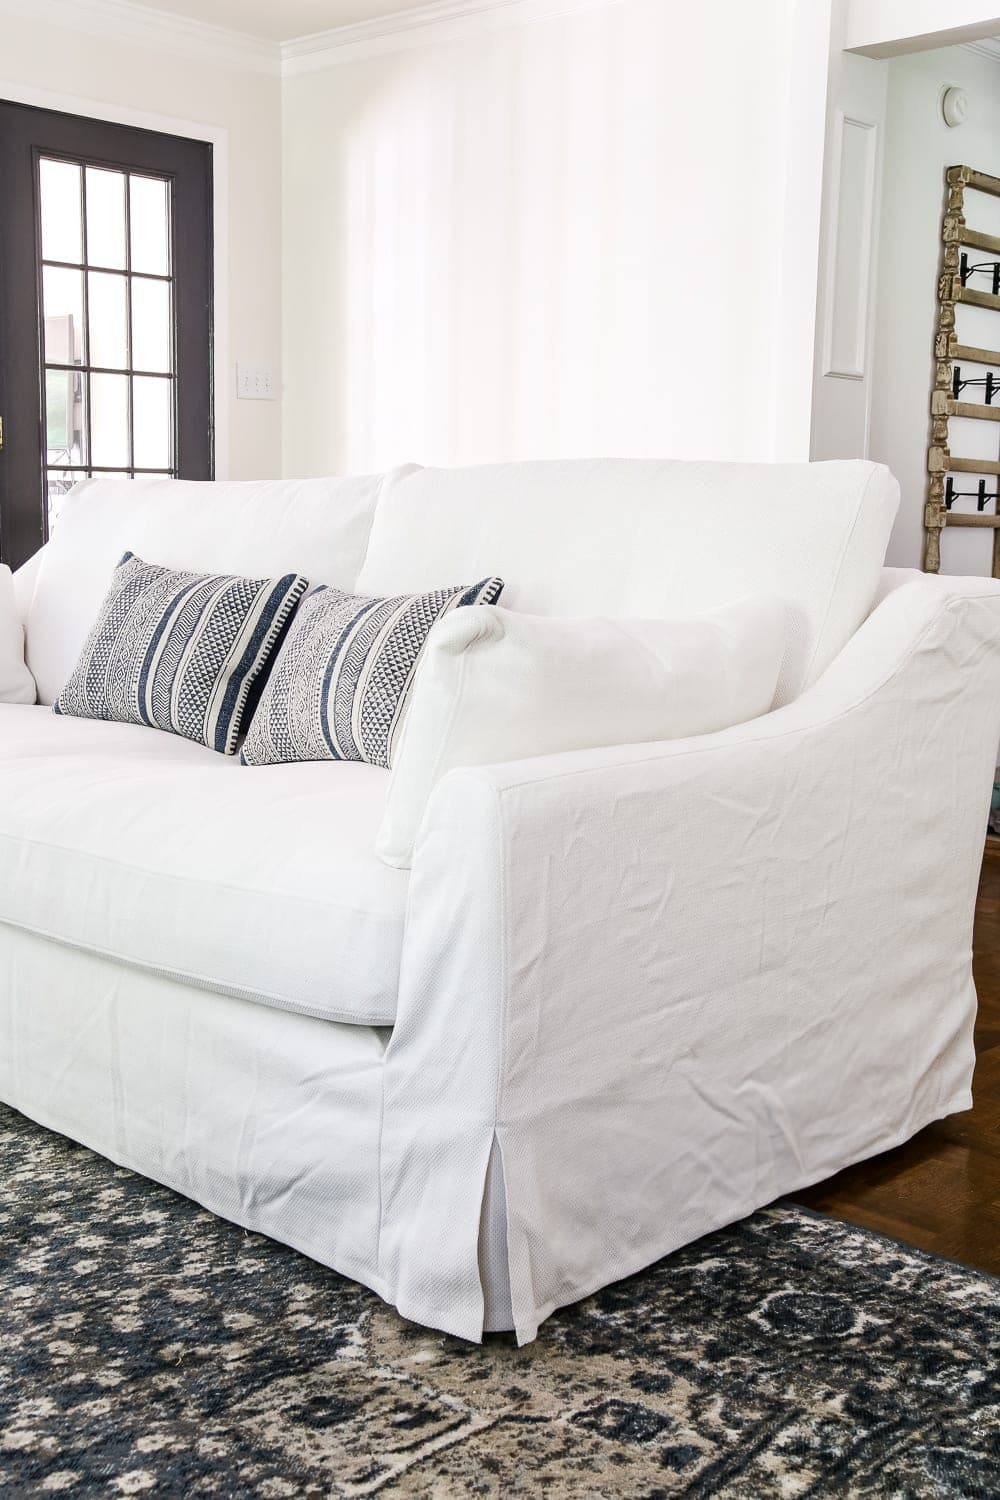 Ikea 39 s new sofa and chairs and how to keep them clean for Ikea divan